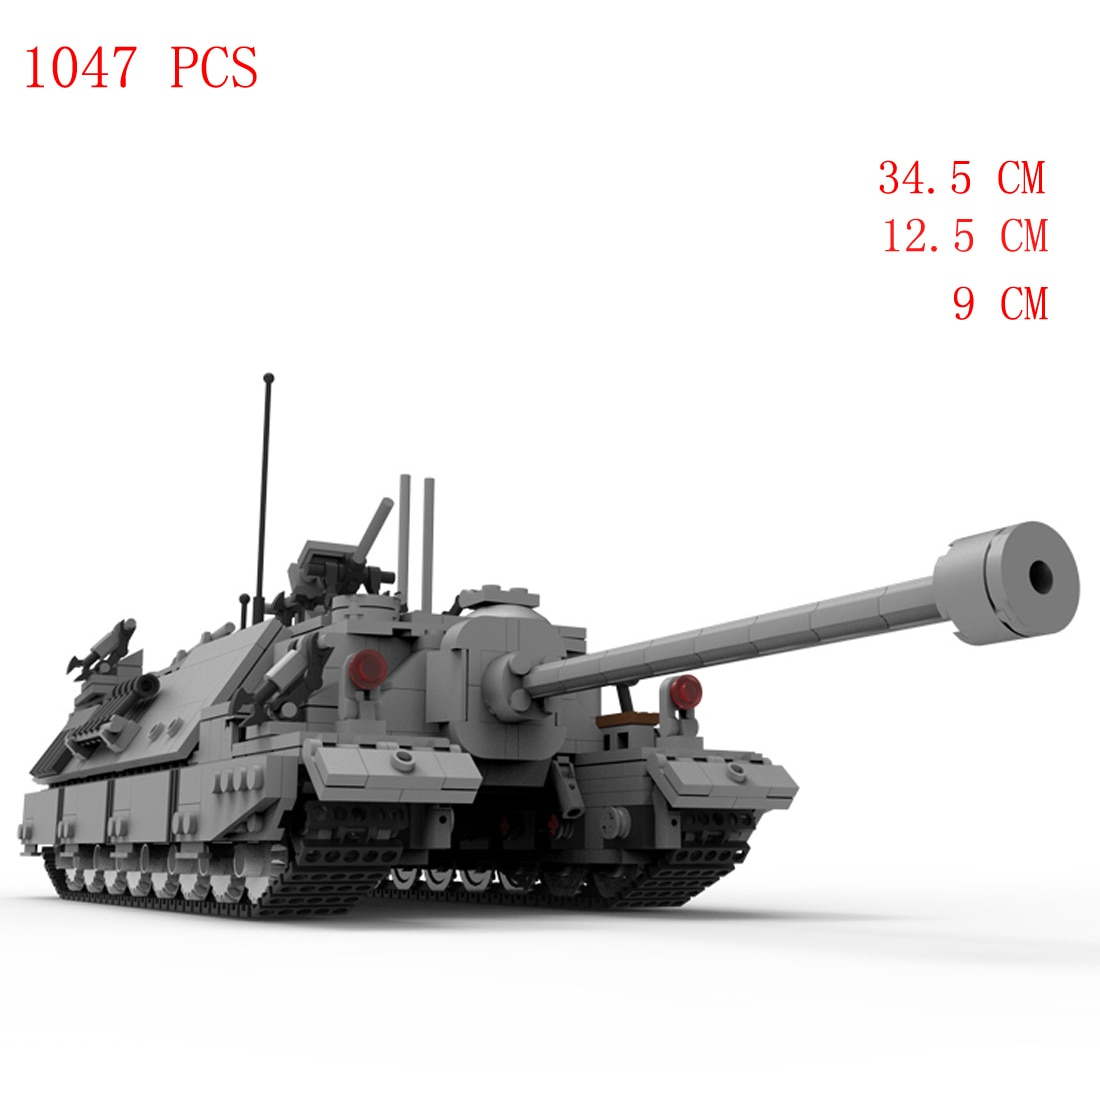 hot military WWII Soviet Union Army technic T-95 main battle tank vehicles war equipment Building Blocks model bricks toys gift xingbao technic new military series 06033 the uk challenger2 main battle tank model blocks bricks toys figure christmas gifts